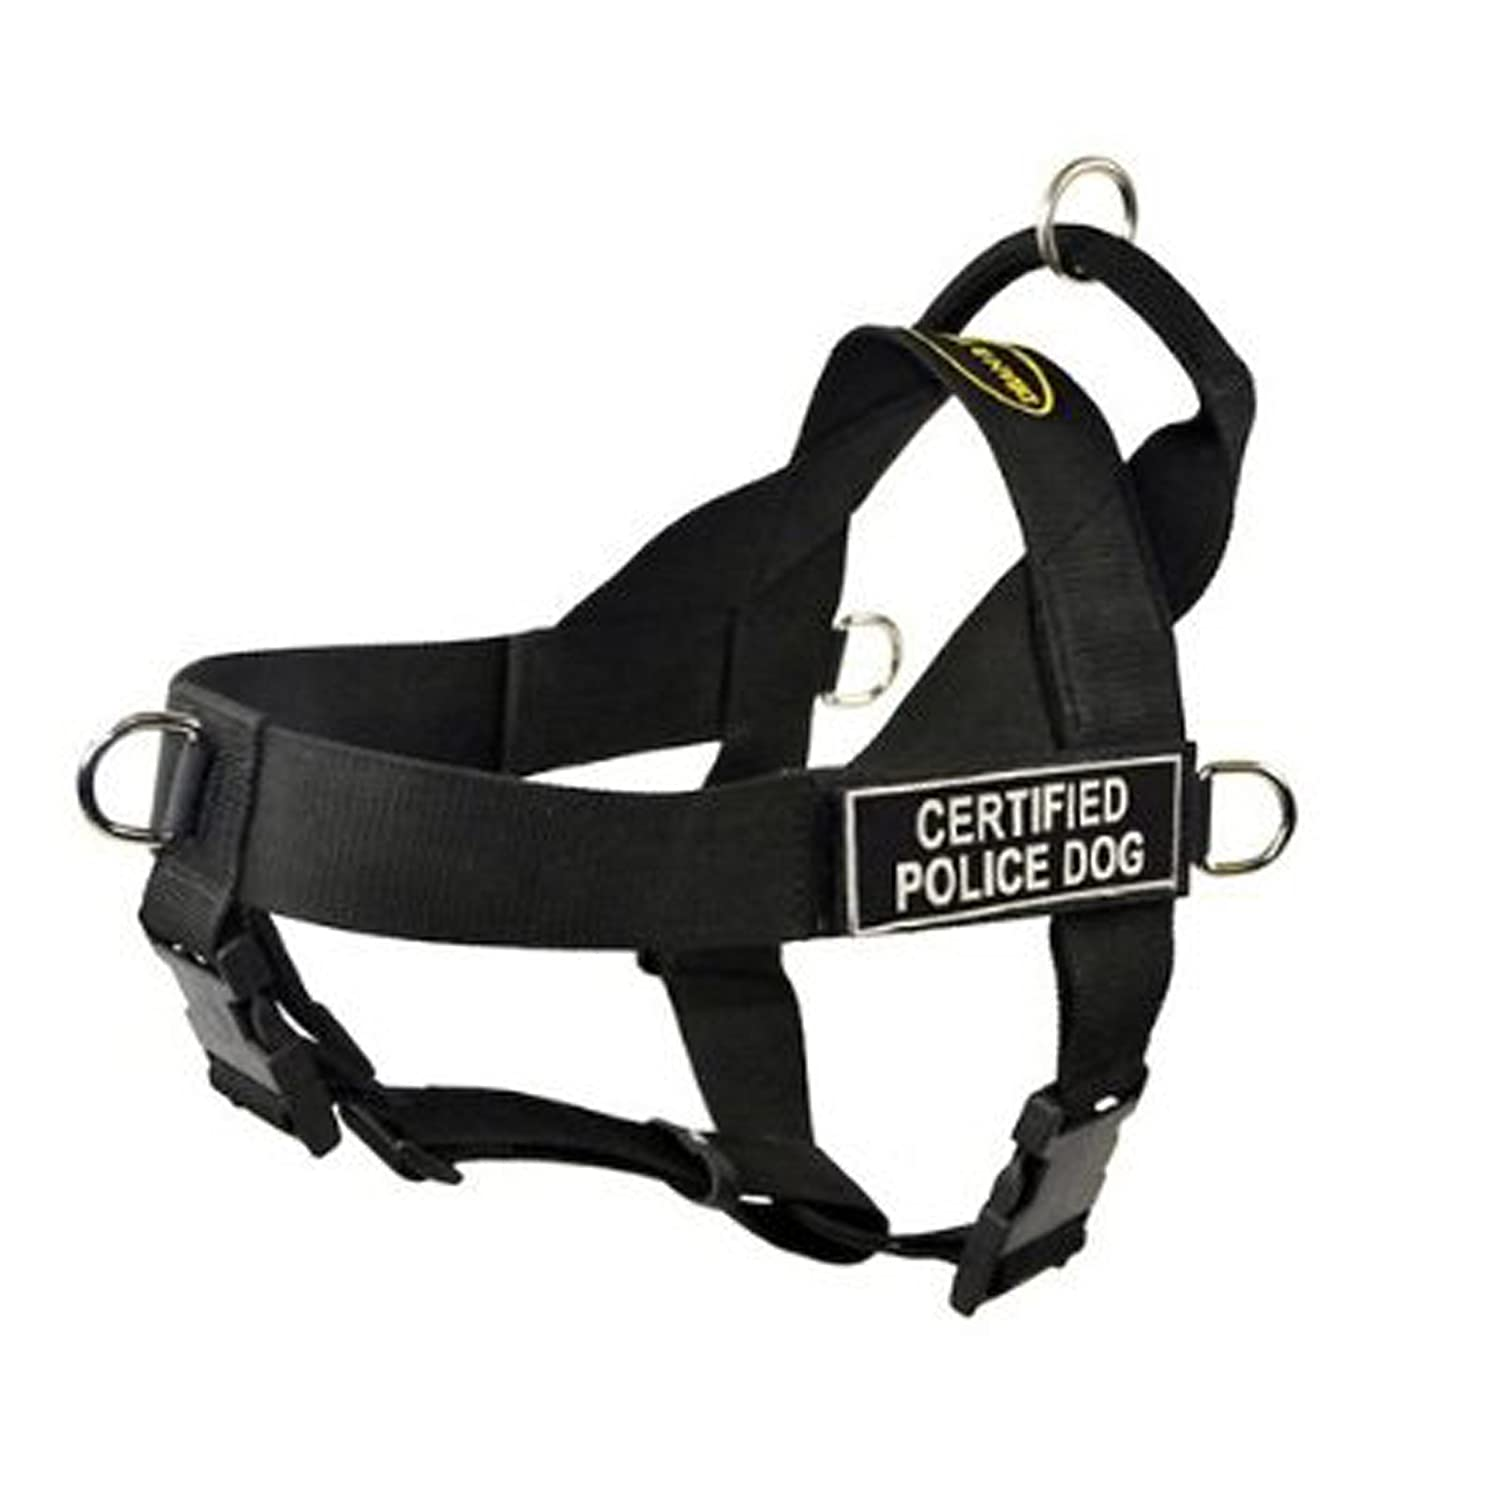 Dean & Tyler Universal No Pull Dog Harness, Certified Police Dog, Black, X-Small, Fits Girth Size  53cm to 64cm